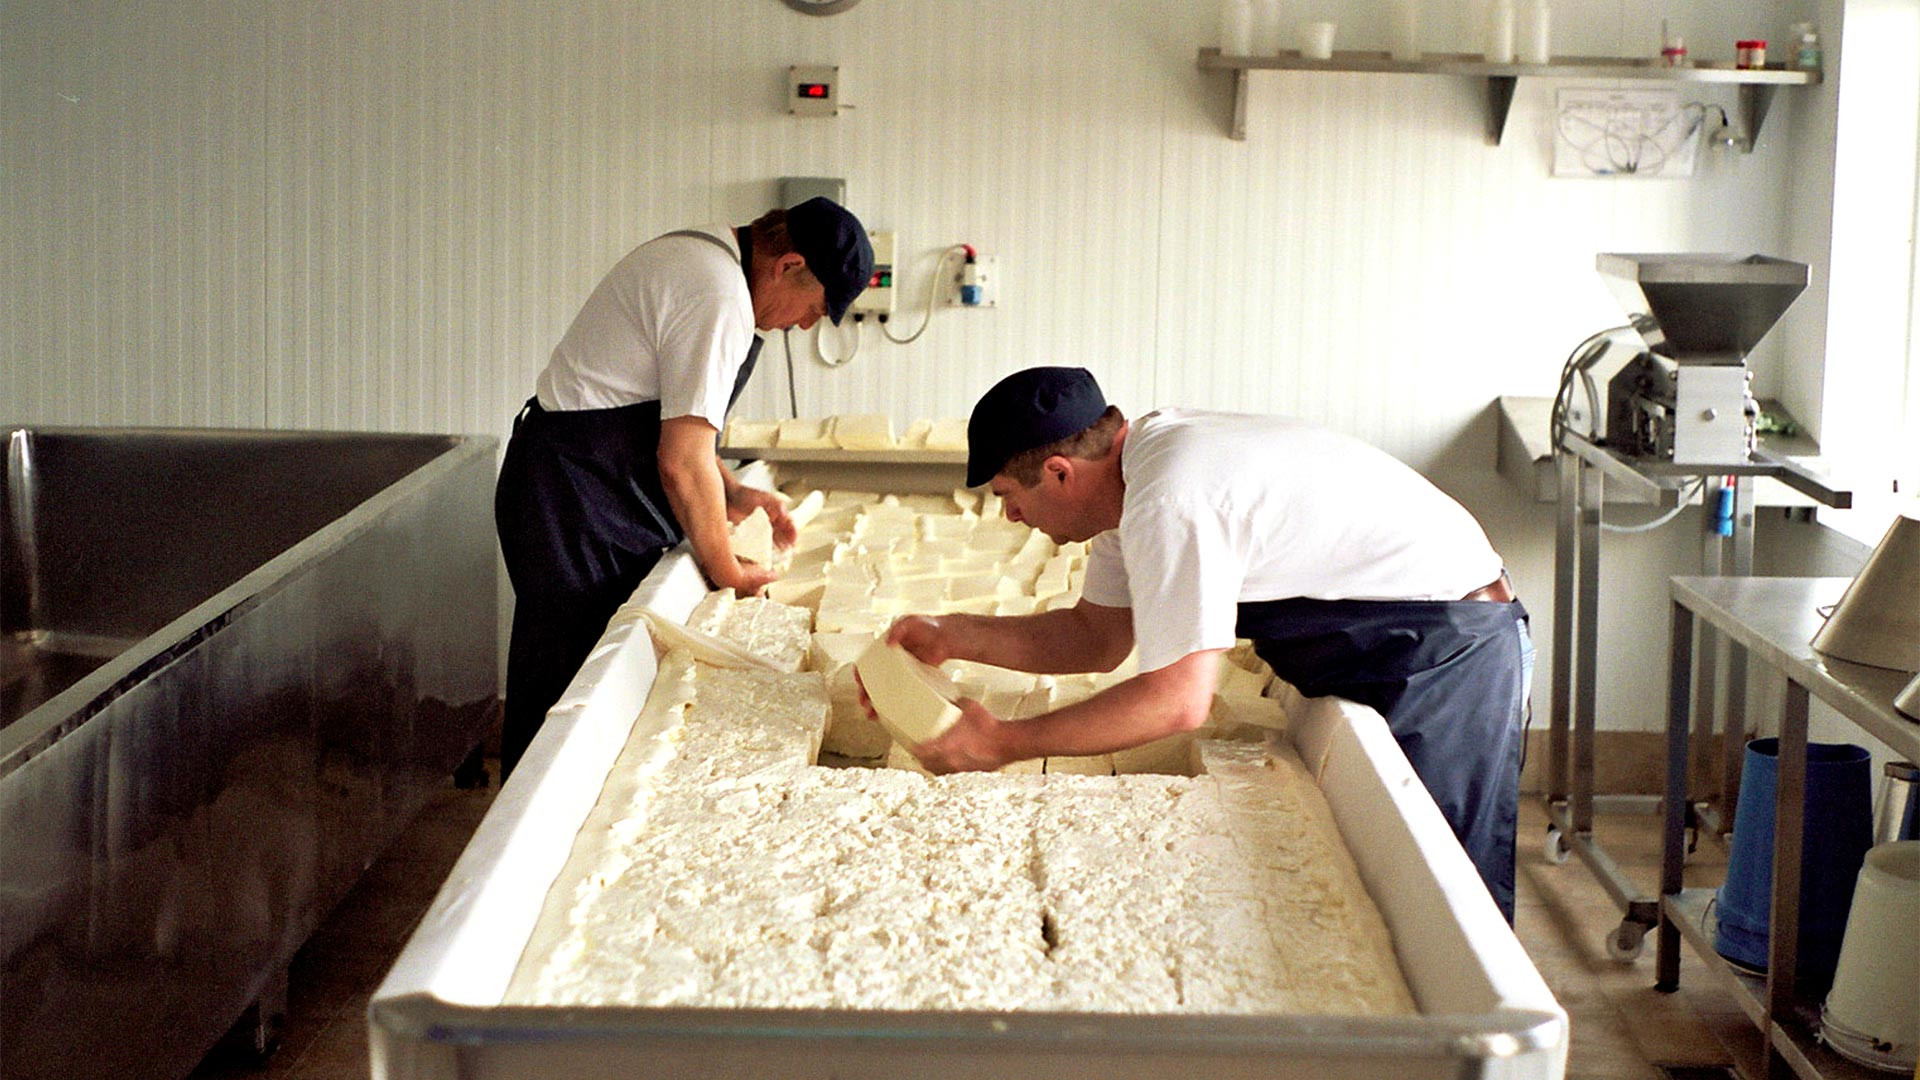 Cutting curd at Stichelton Dairy